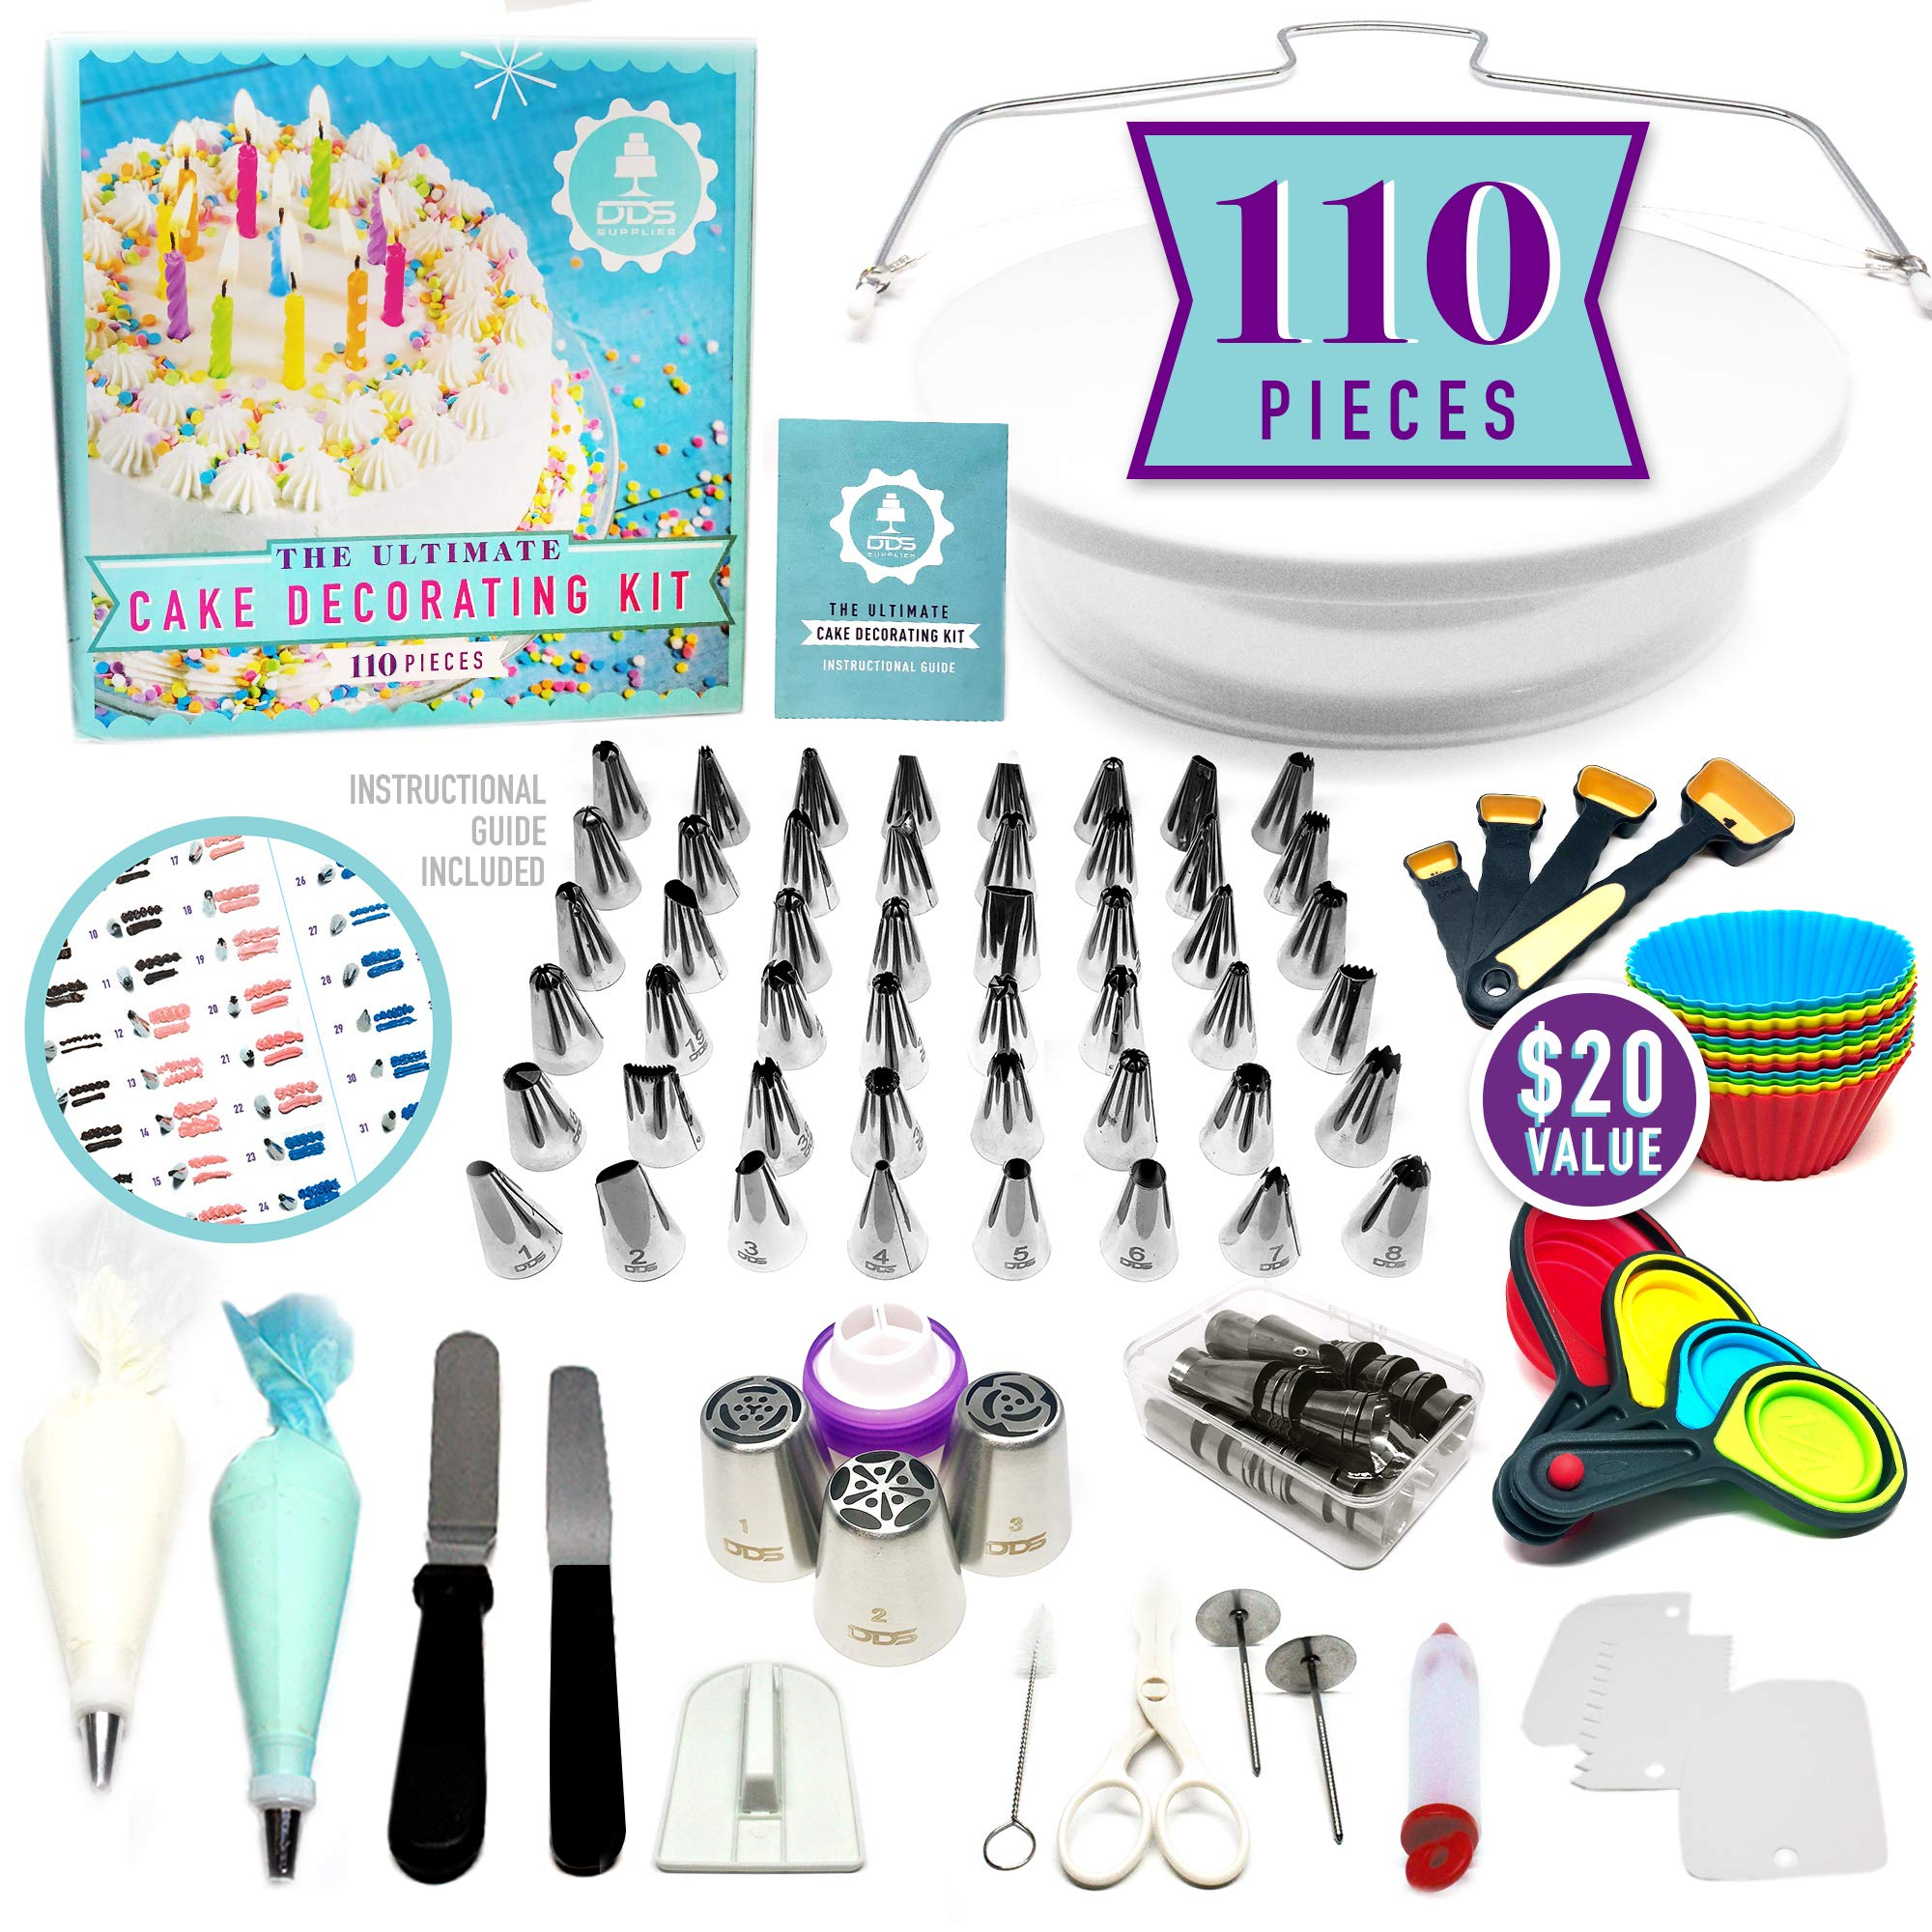 NEW!!! 110pc Ultimate Cake Decorating Supplies Kit, Rotating Cake Decorating Turntable,